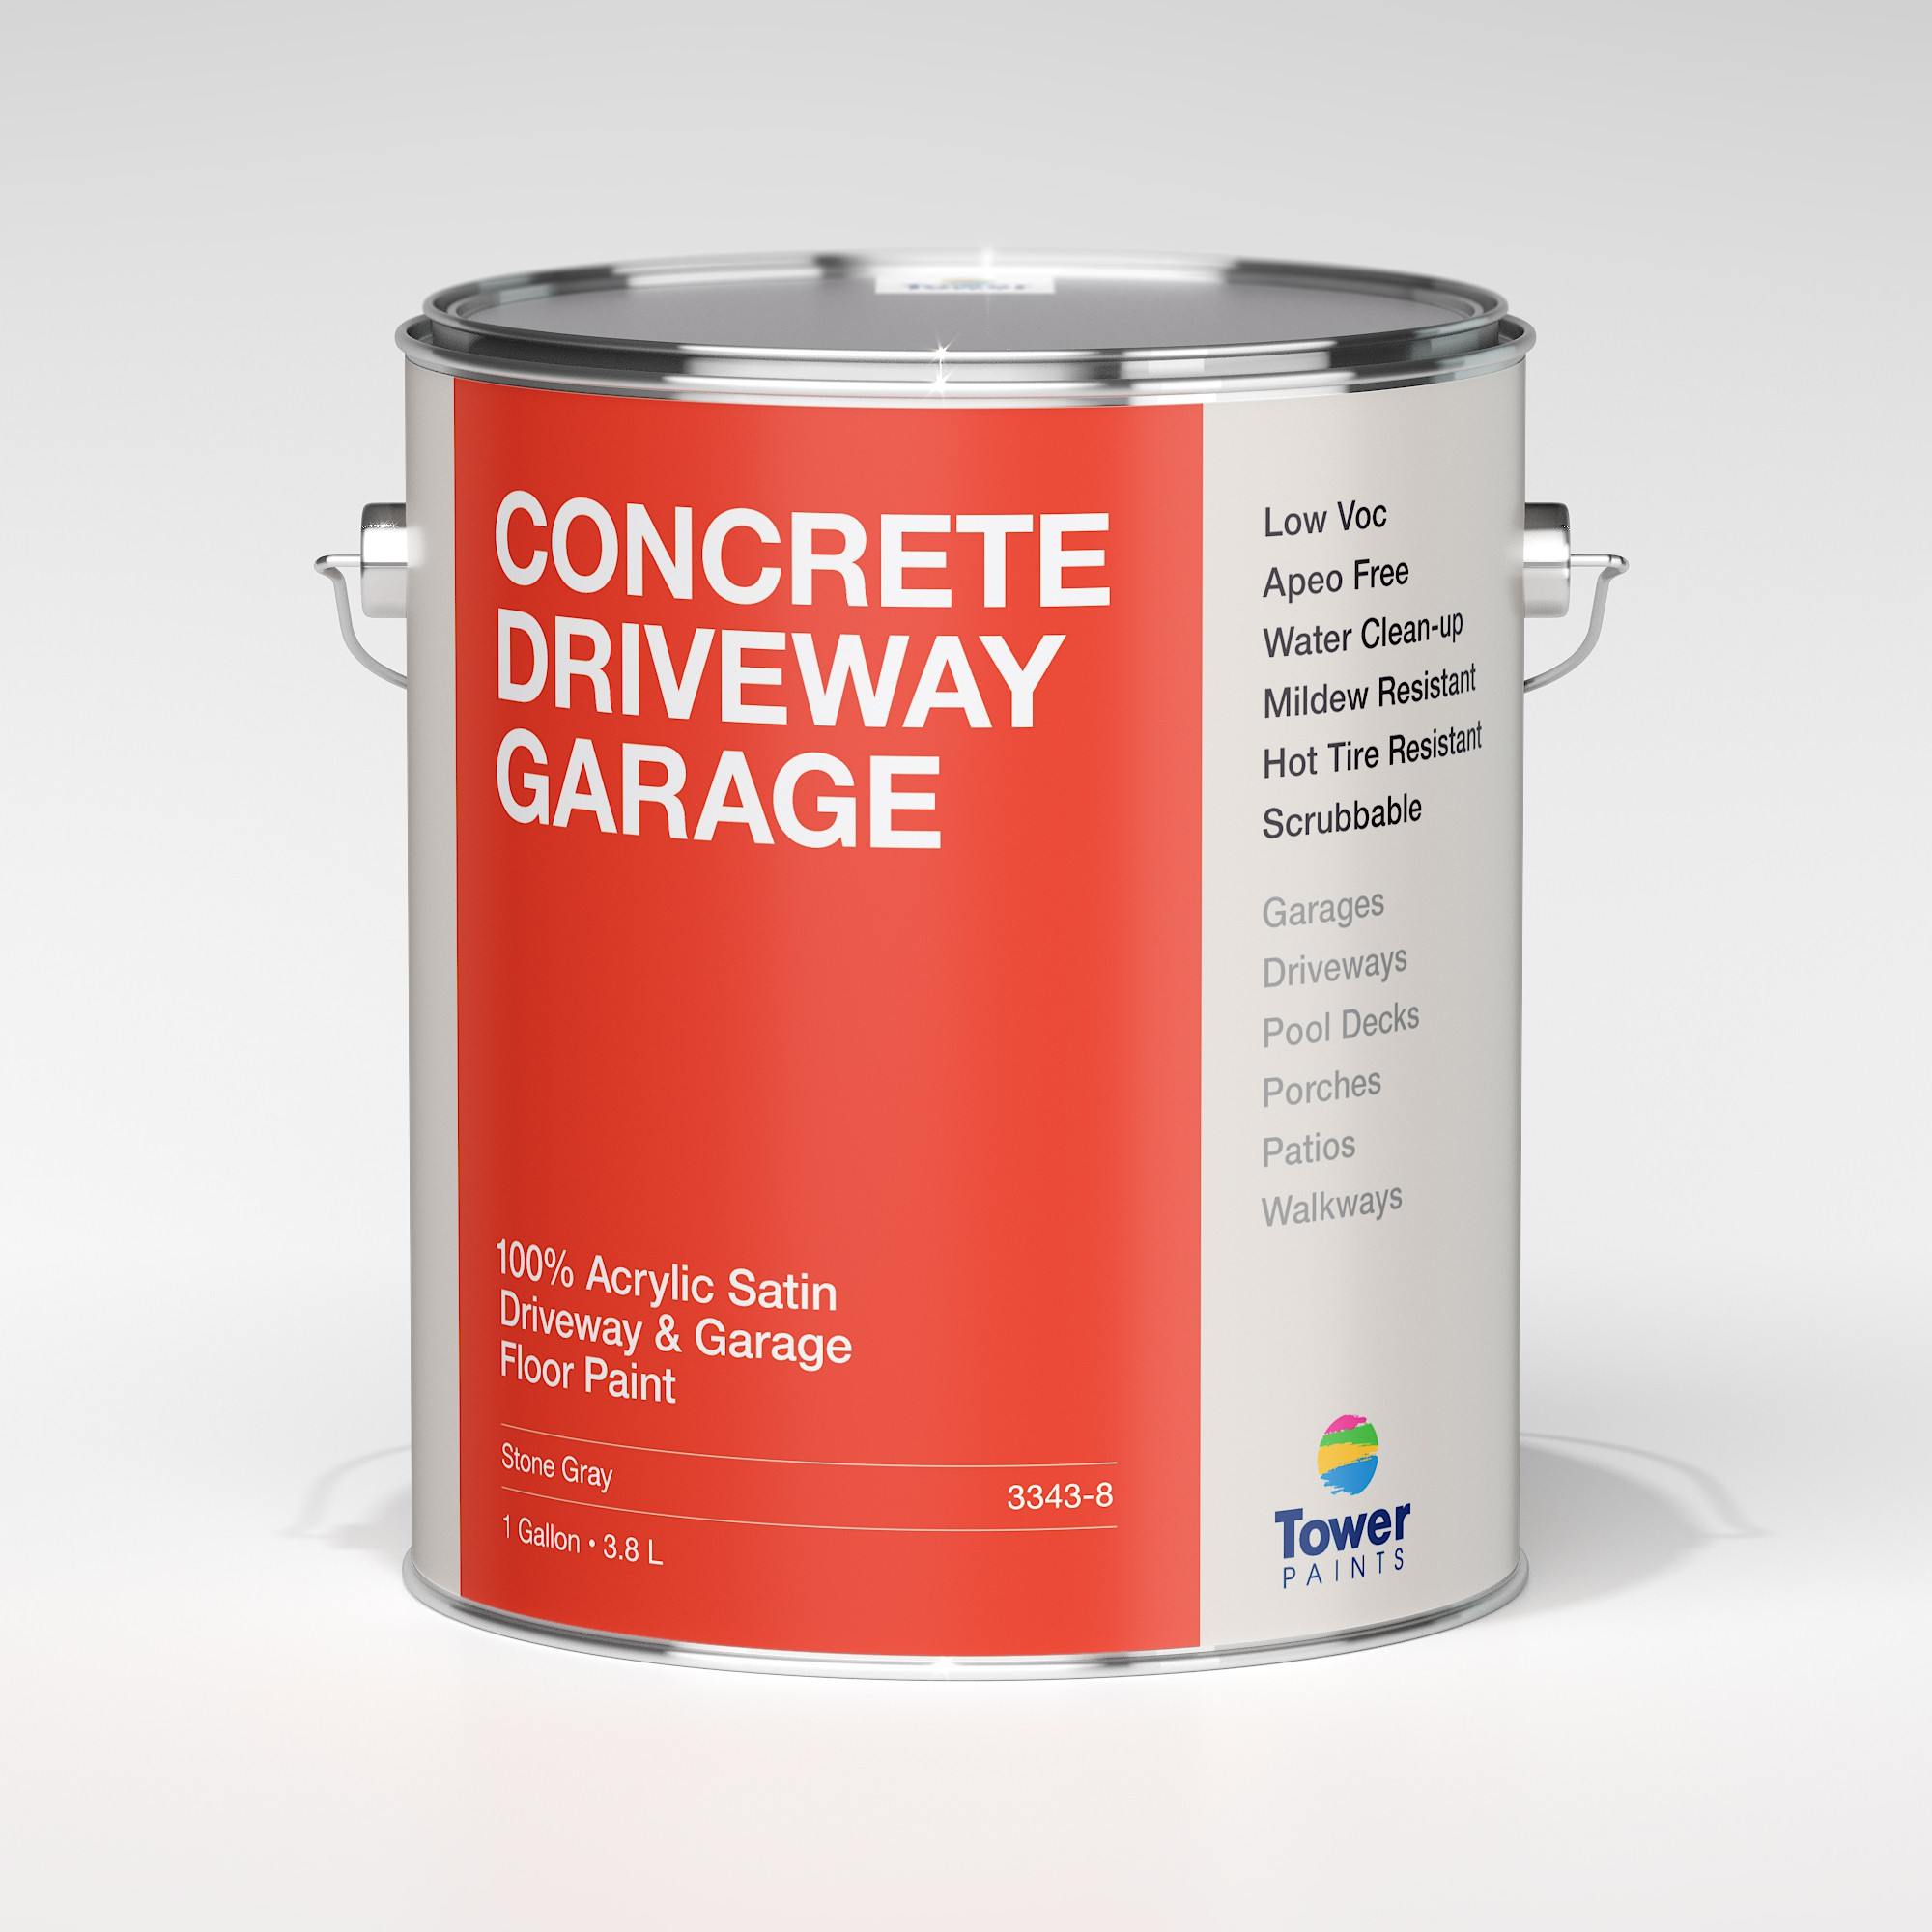 Modern Flat Design Needed for Gallon Paint Can Labels